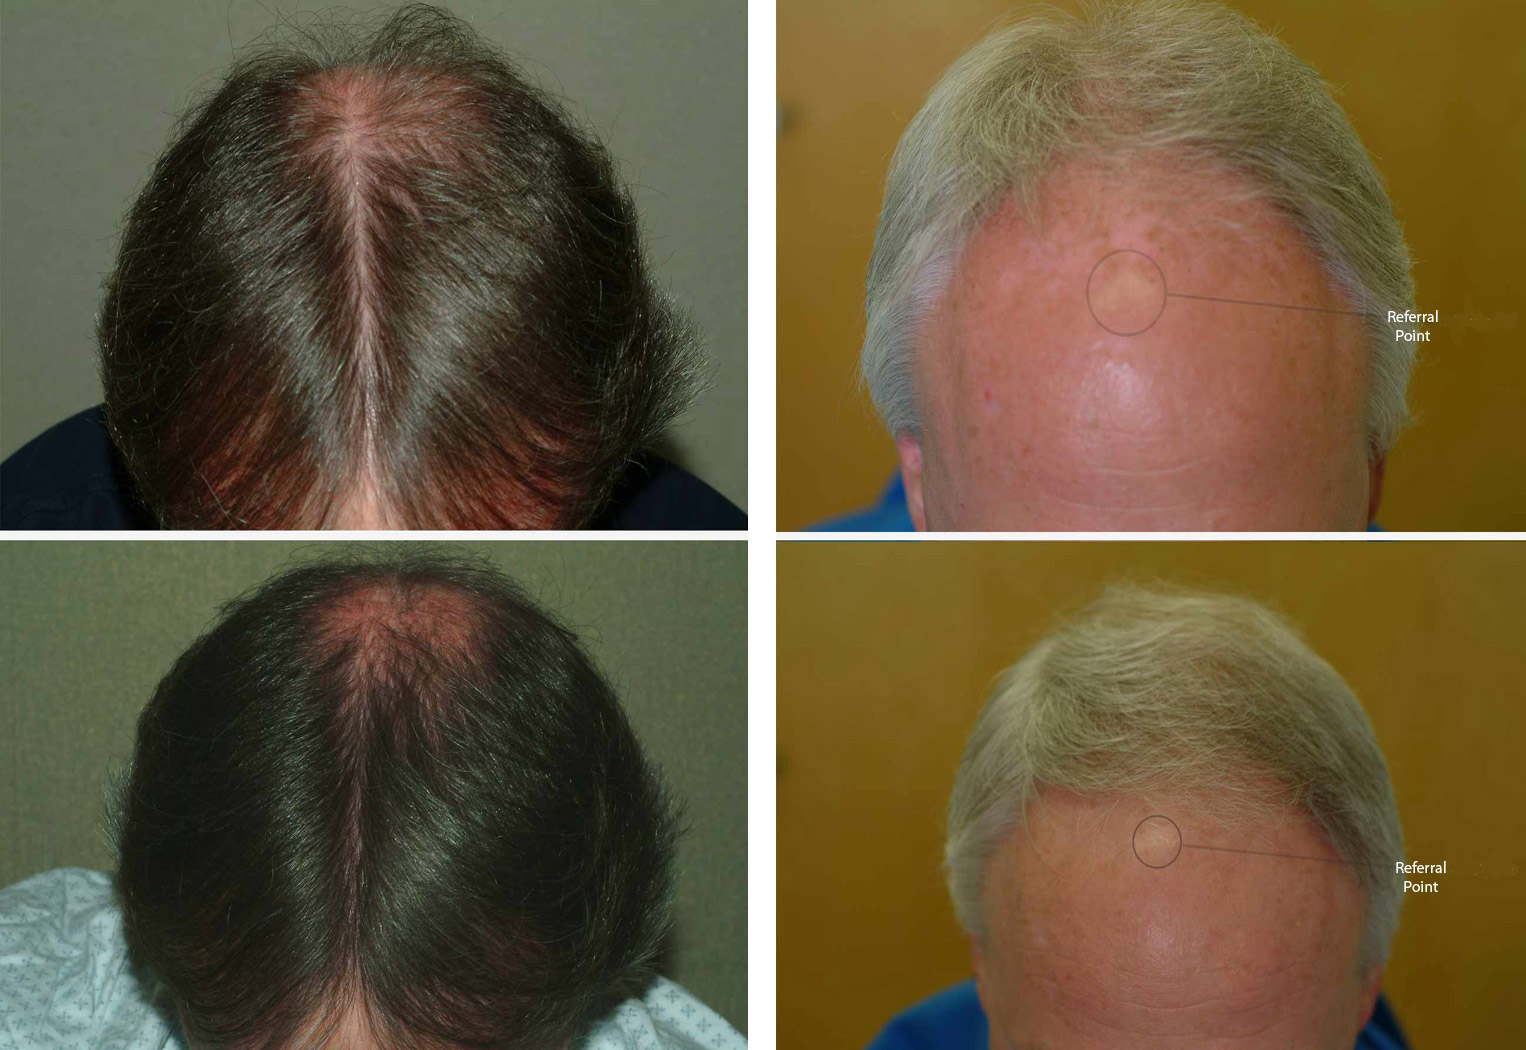 hairmax laser hair therapy treatment photos before and after